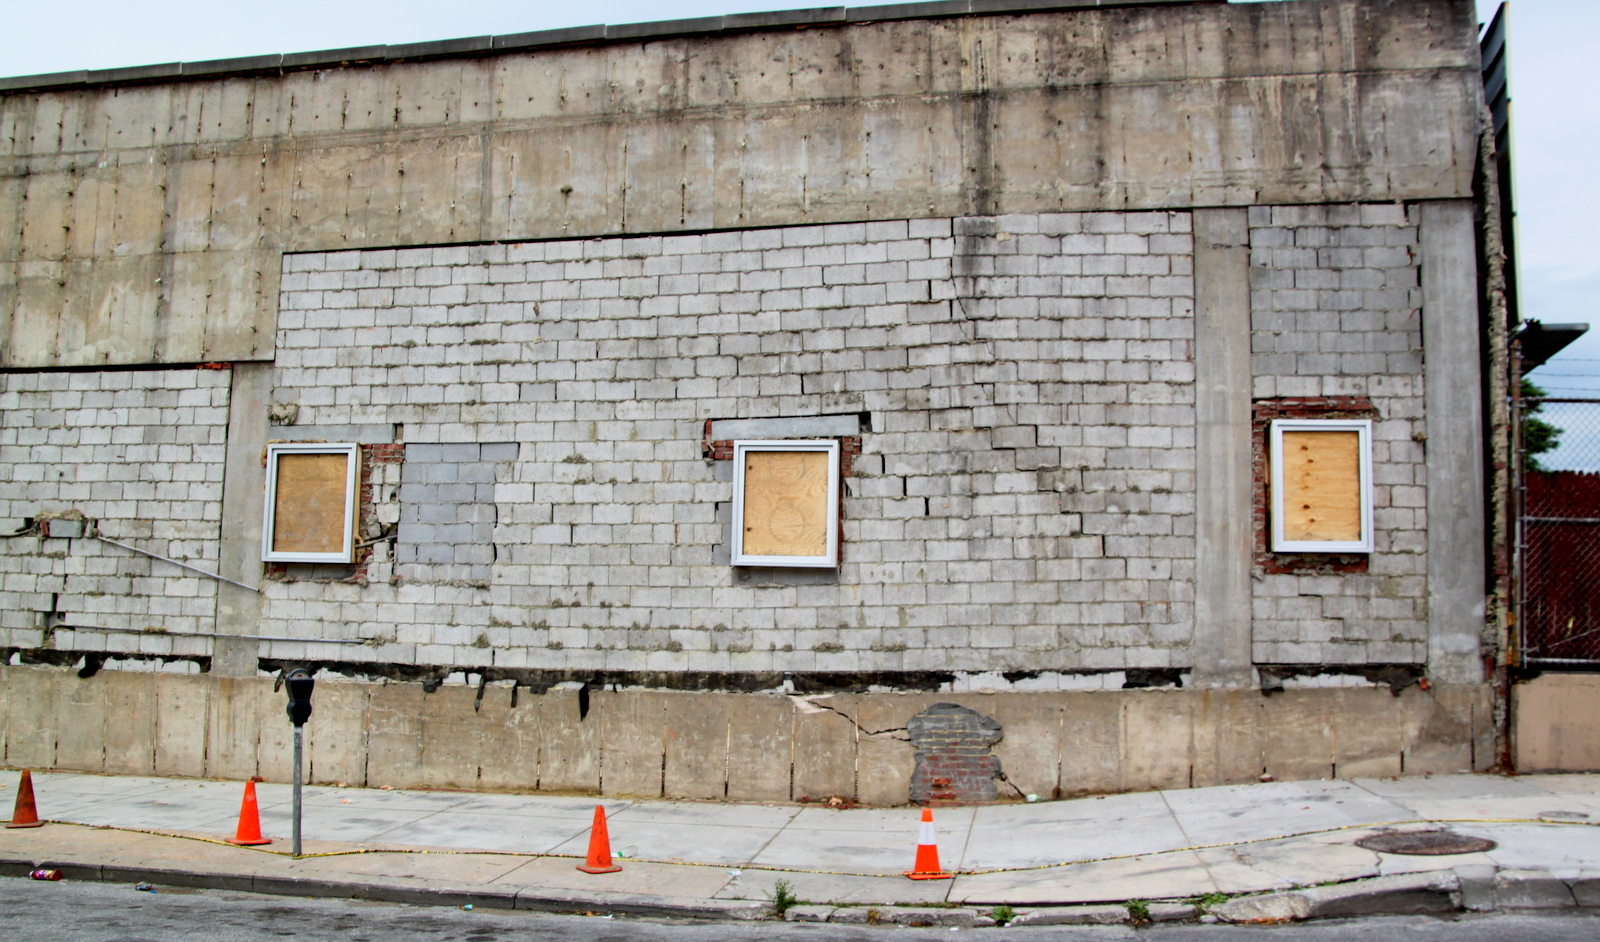 Stabilized with piers, the Preston Street building will have its facade re-applied soon. (Fern Shen)